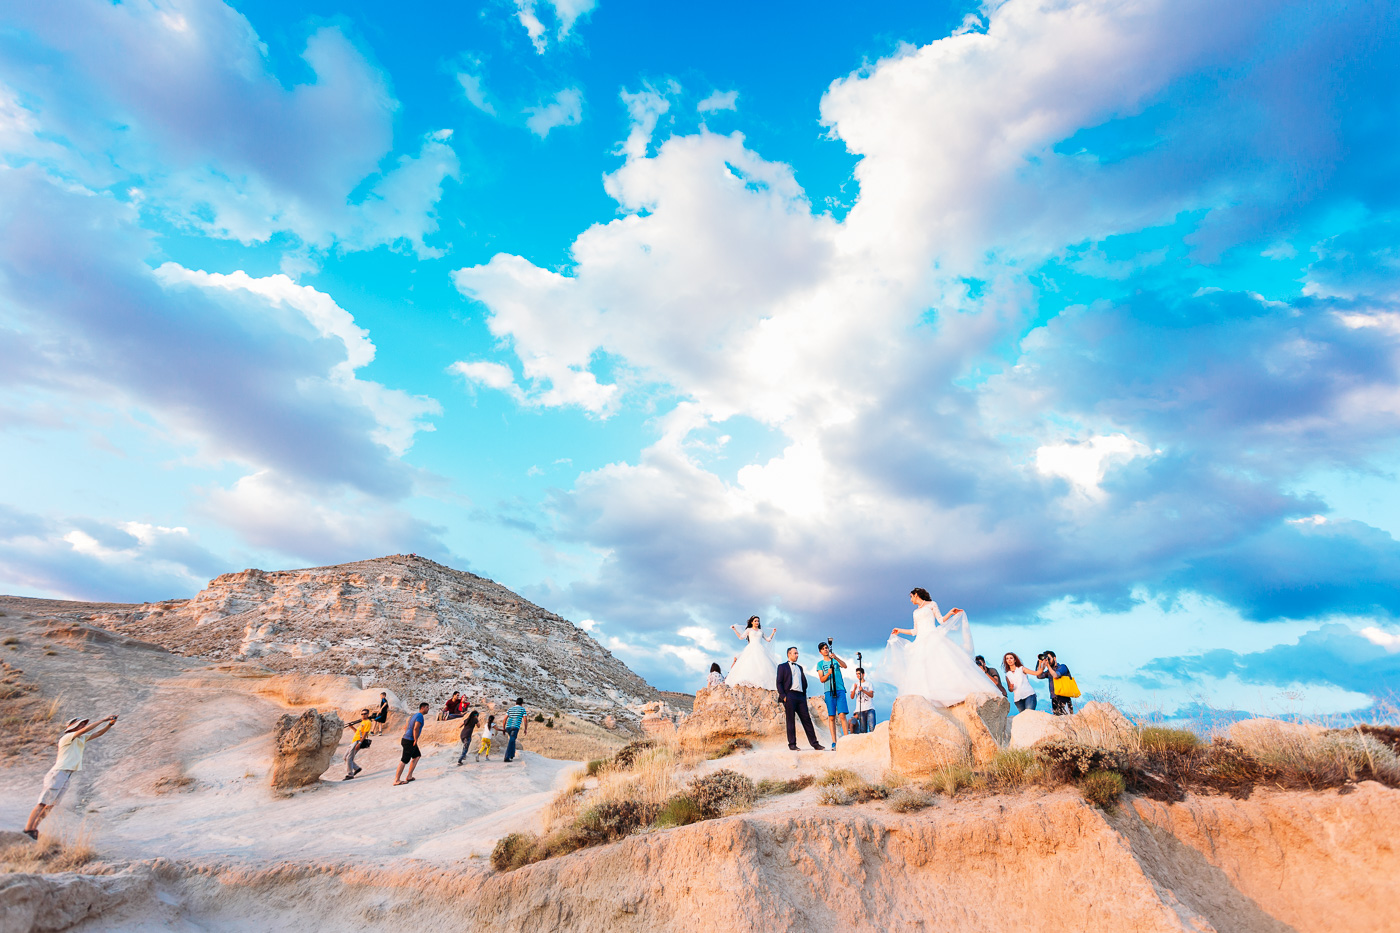 cappadocia how to get there